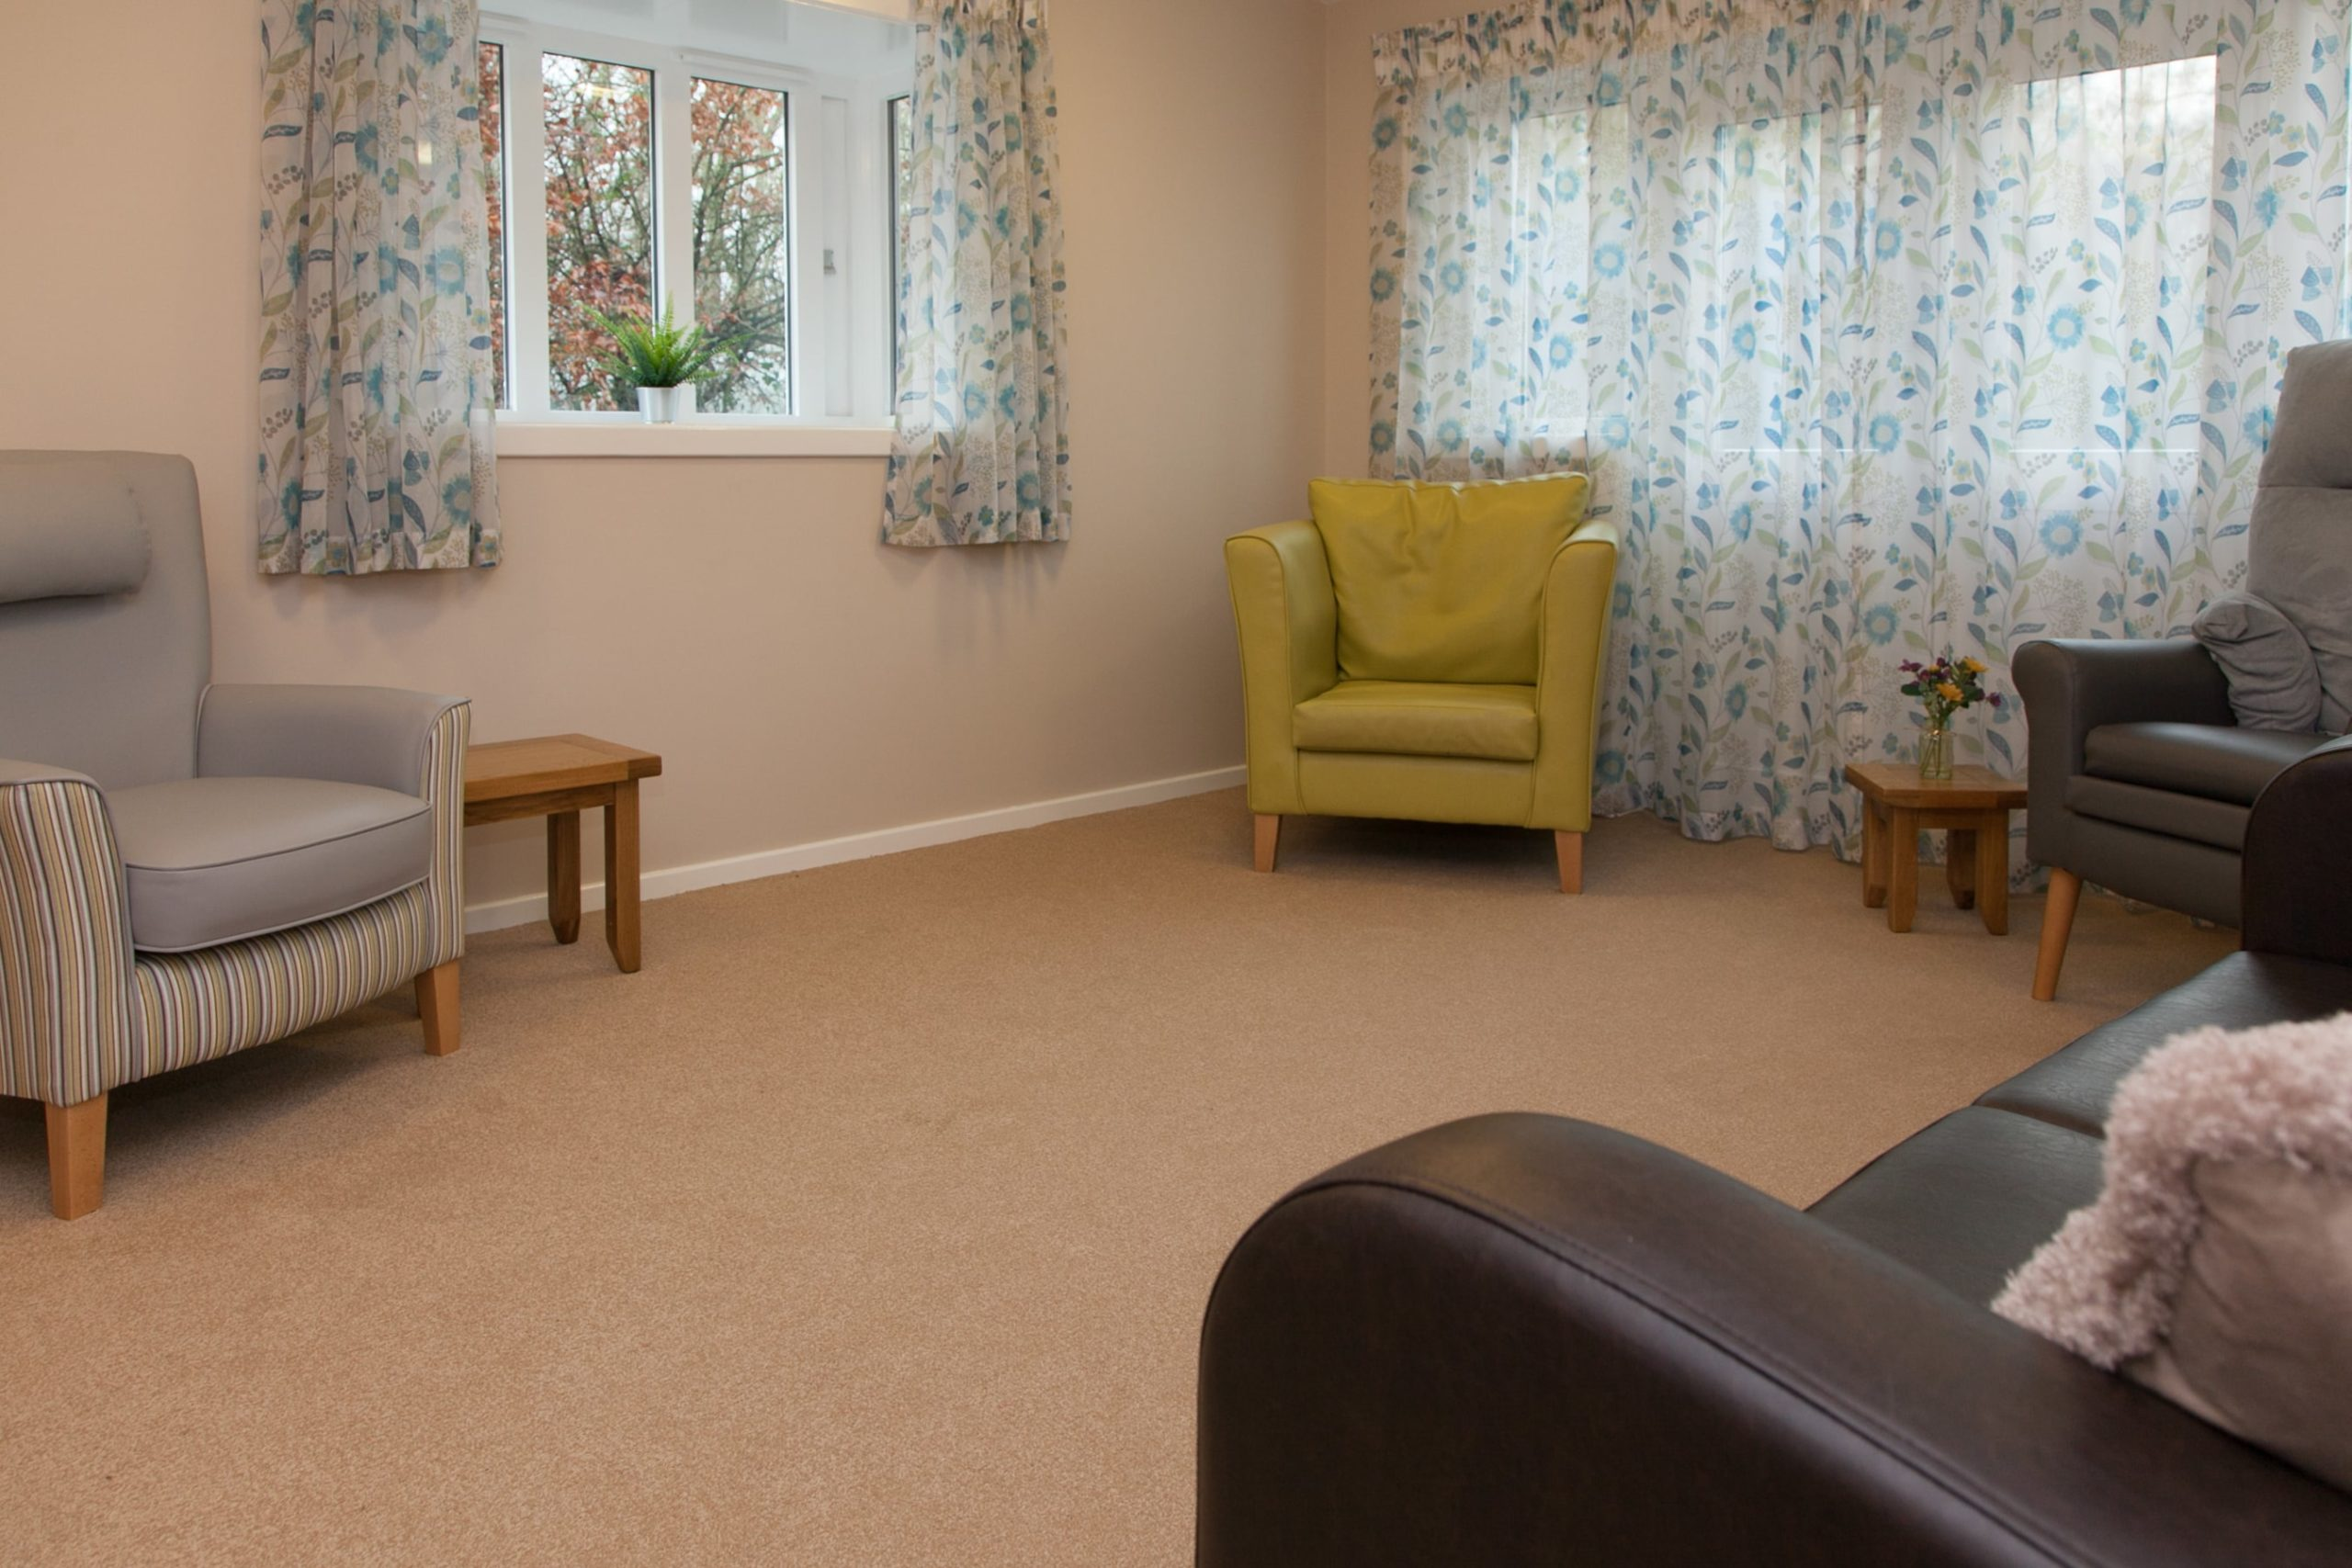 The Support Services Offered by Our Residential Care Homes